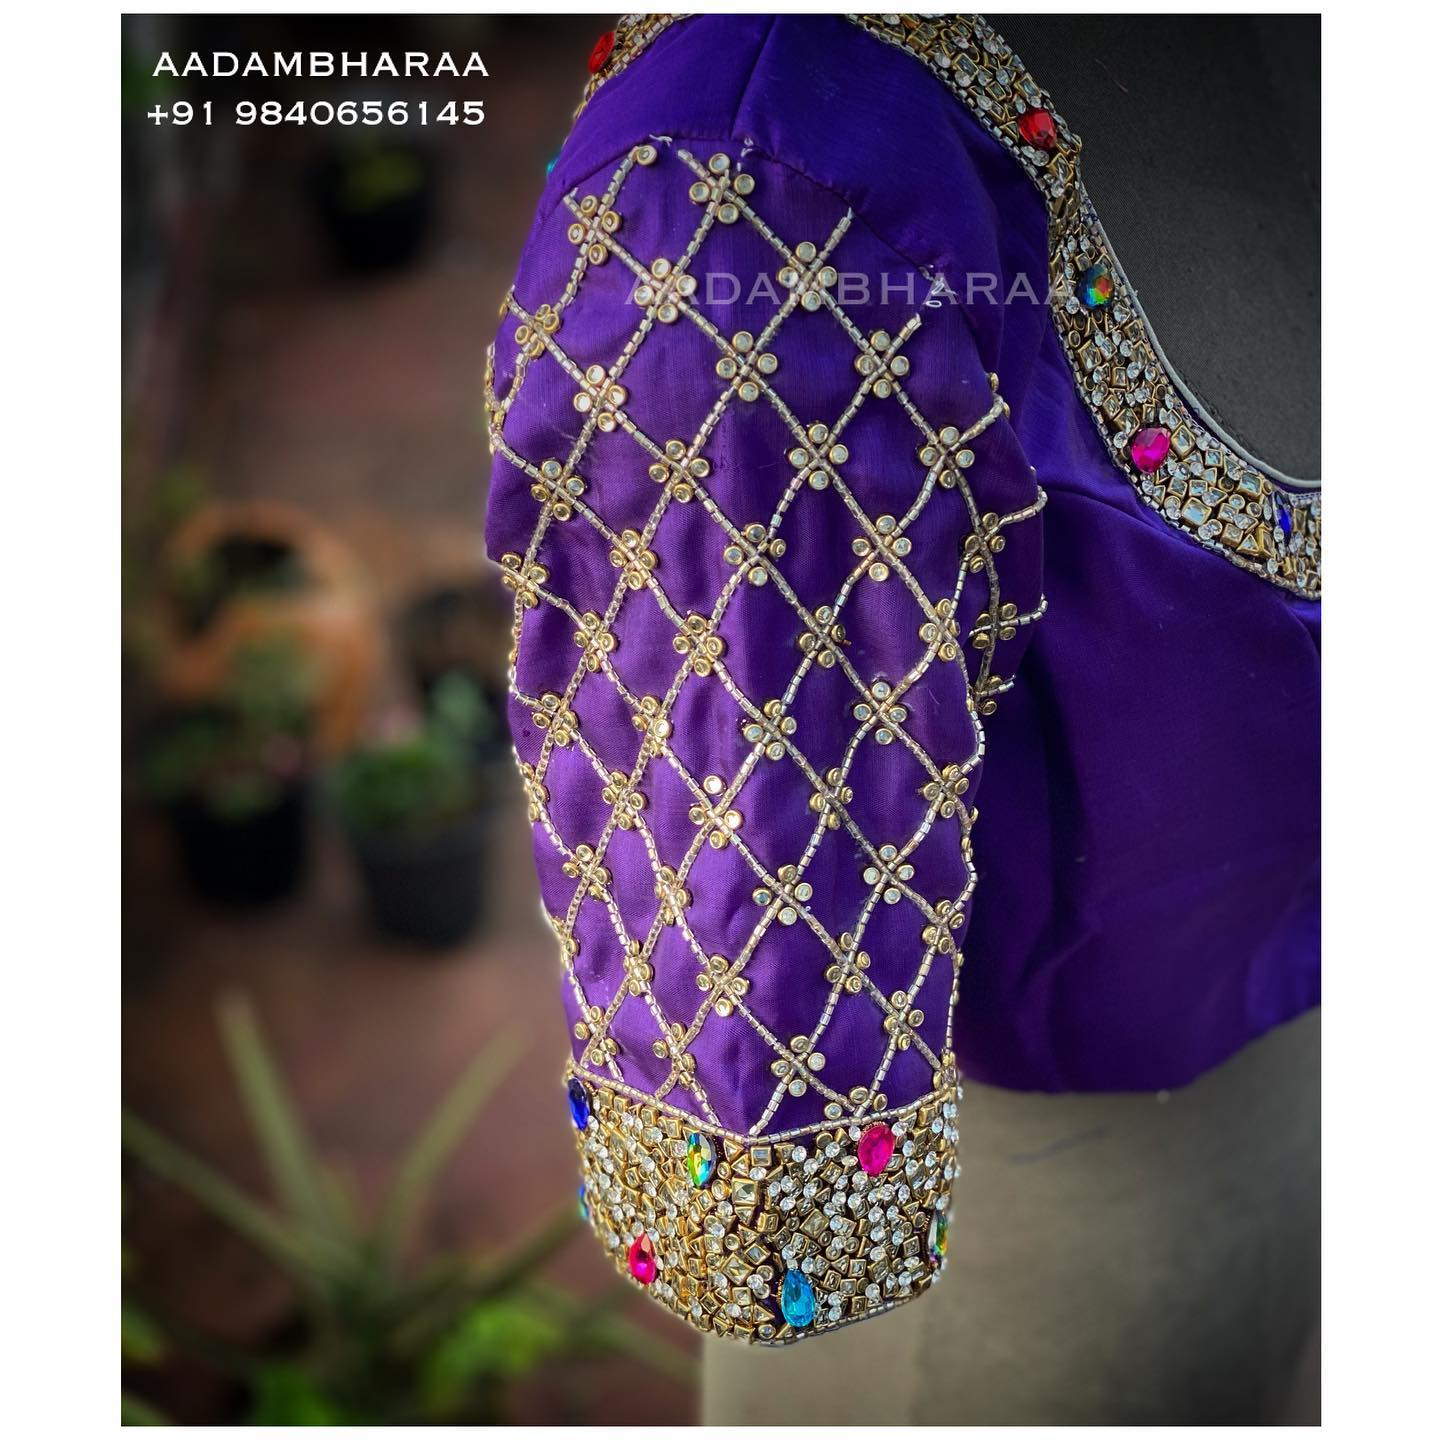 Carefully crafted by Aadambharaa experienced karigars here is a blingy bridal blouse from Aadambharaa that is sure to put you on spotlight! The purple blouse is studded with stones and crystals that are hand embroidered to add sparkle to your ensemble. 2021-02-21